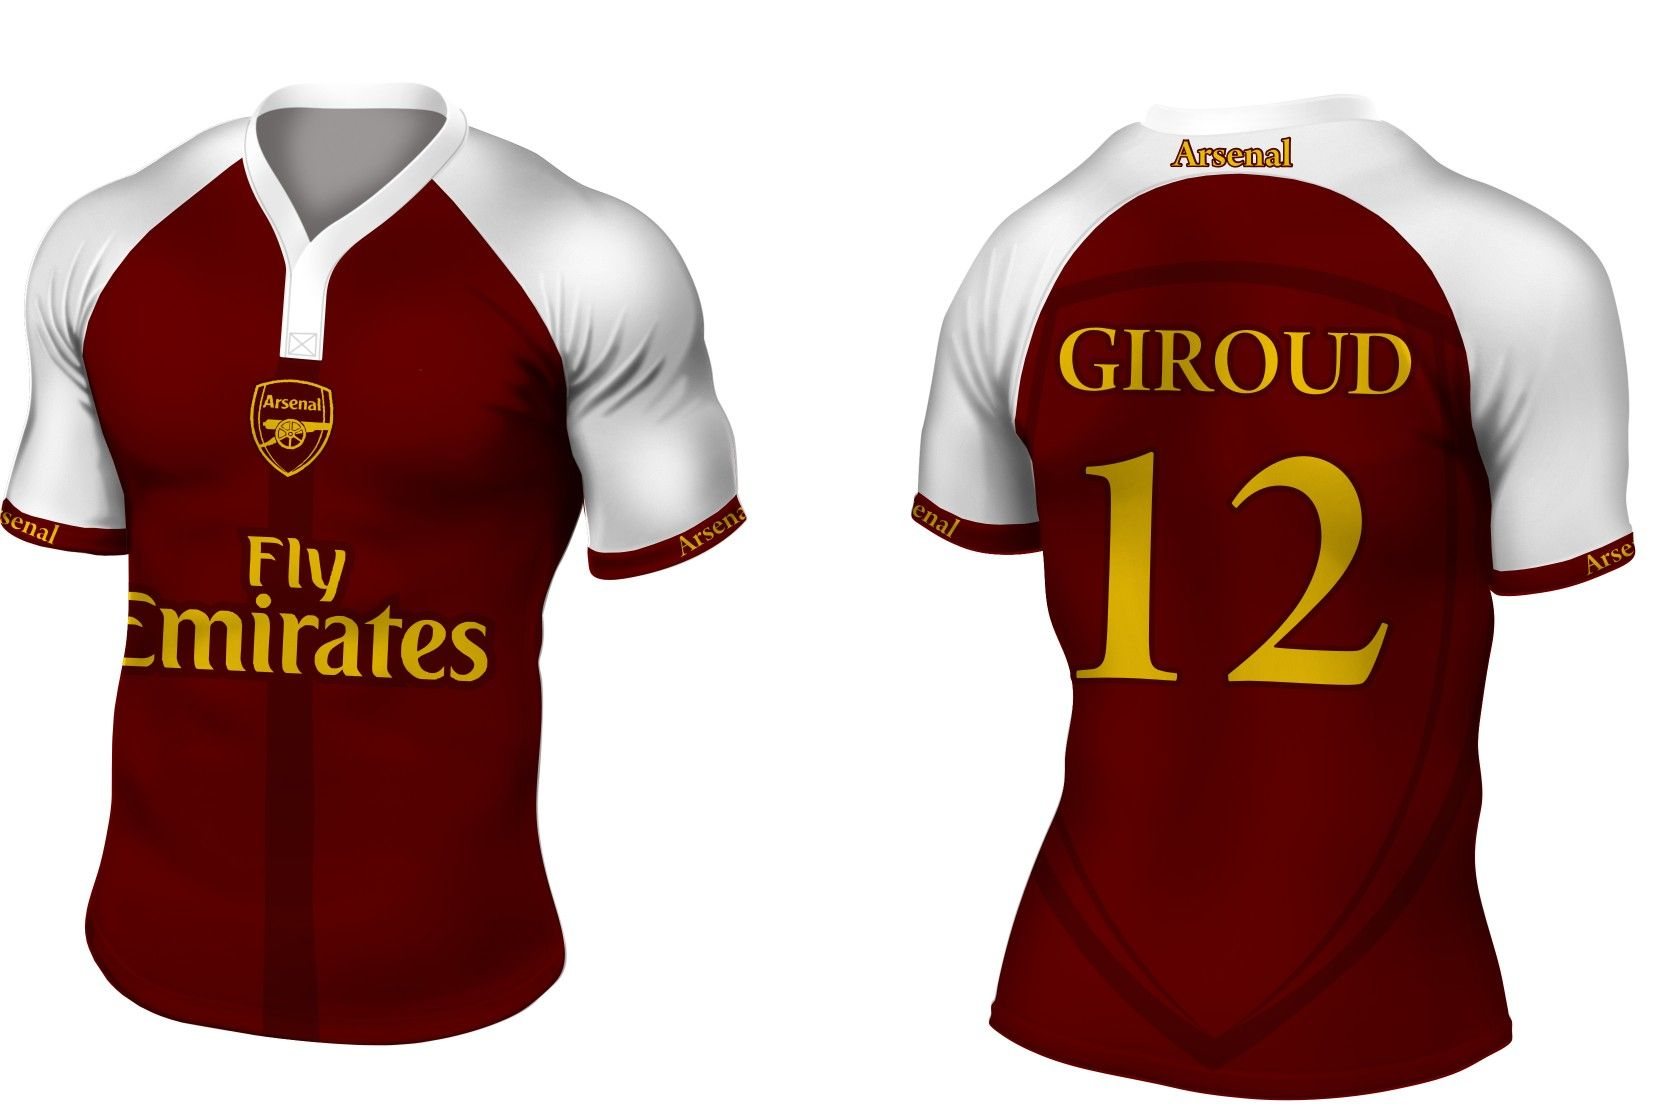 1b4c11408f2 Arsenal FC Concept Kit | Football | Arsenal fc, Football kits, Football